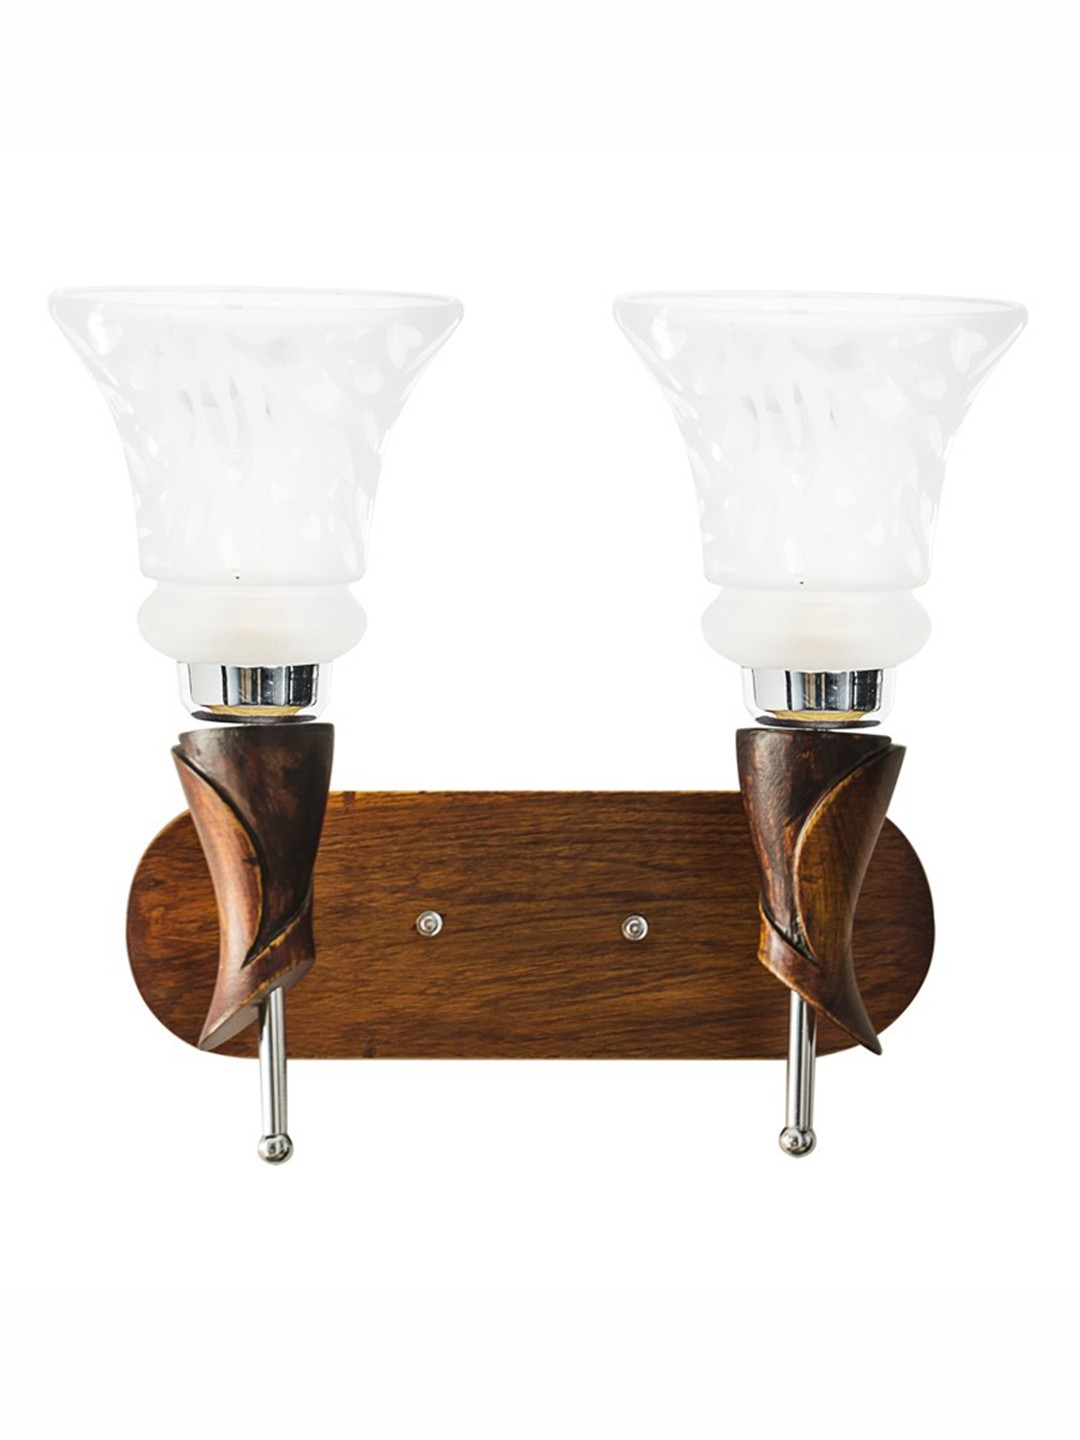 Aston Wood Double Wall Light